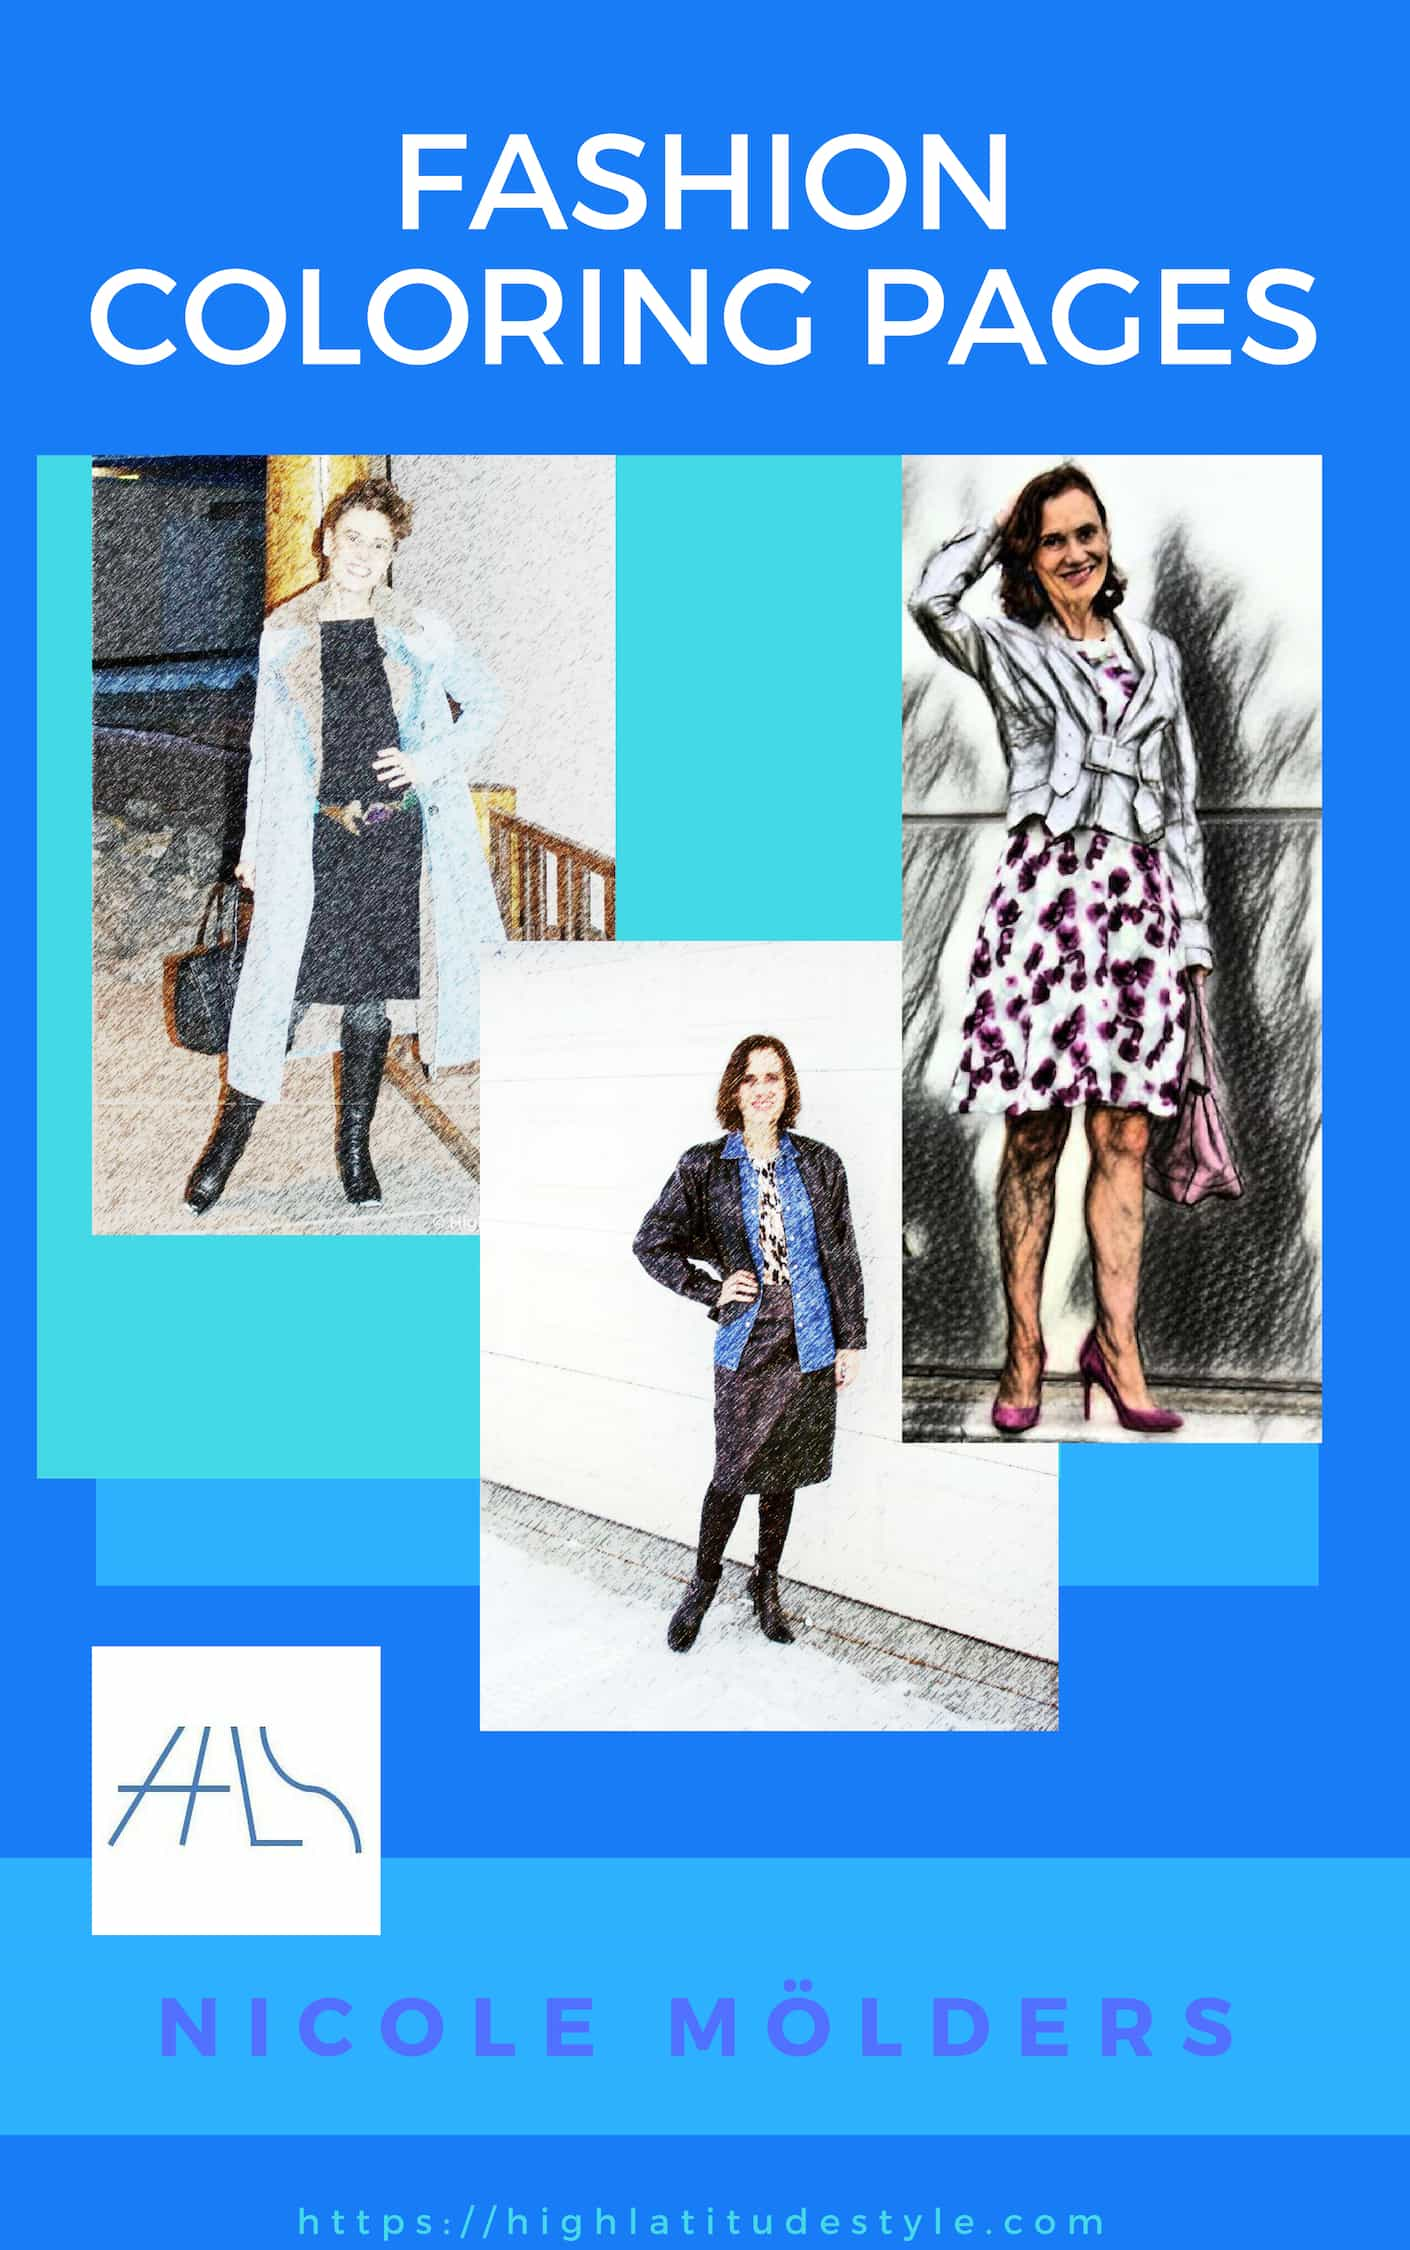 Fashion Coloring Pages e-book by Nicole Mölders of High Latitude Style